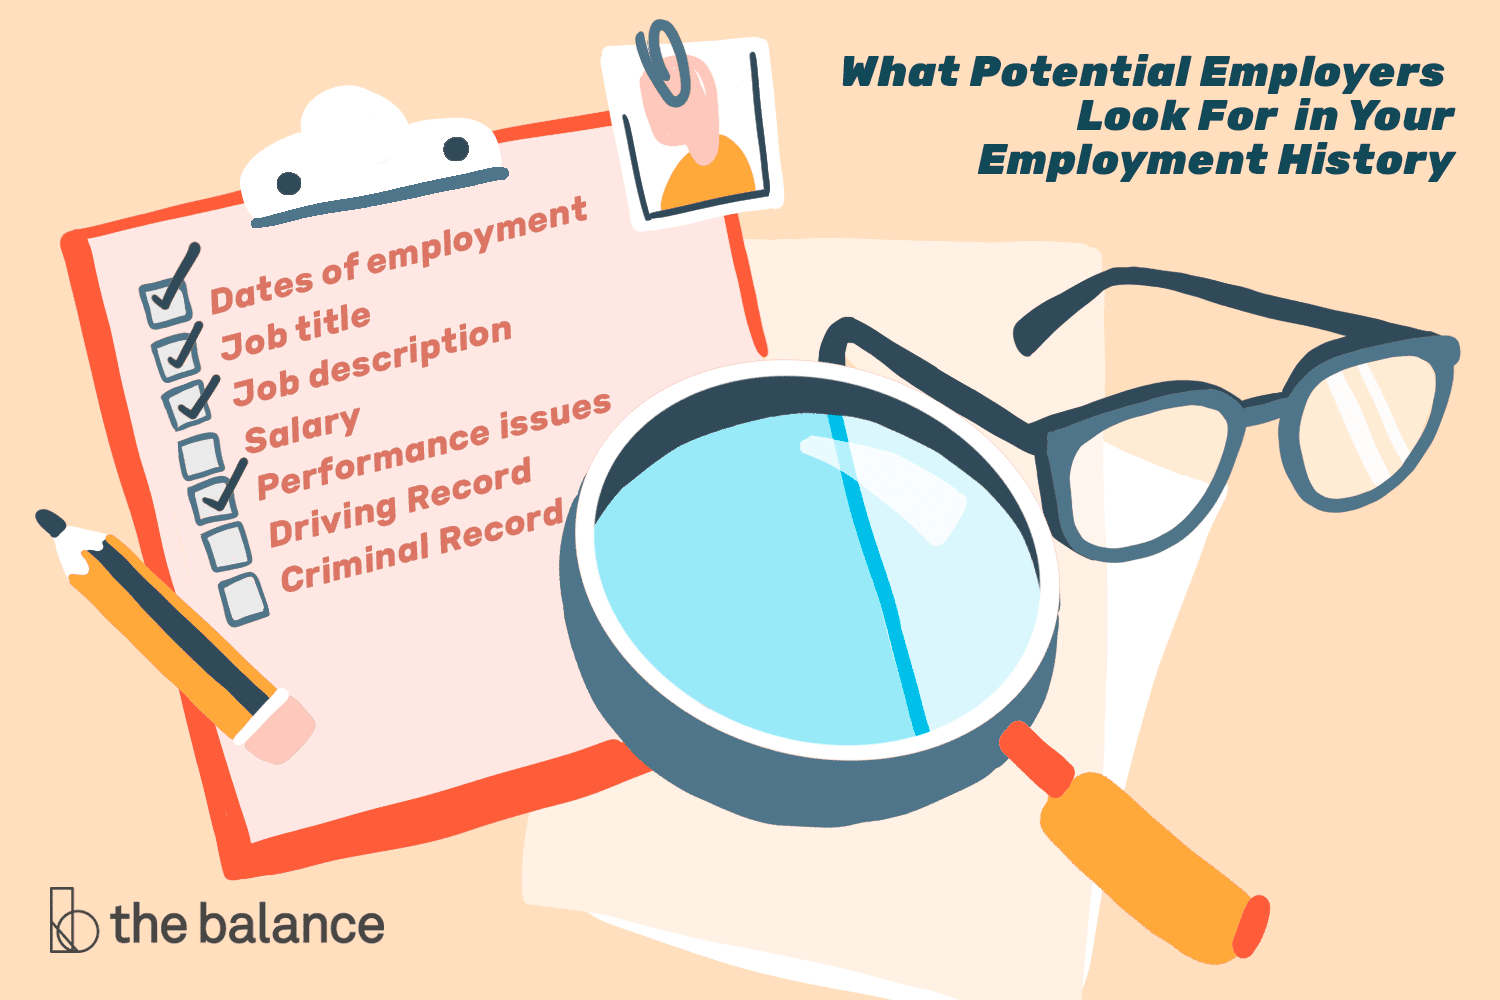 Can Employers Check Your Employment History?